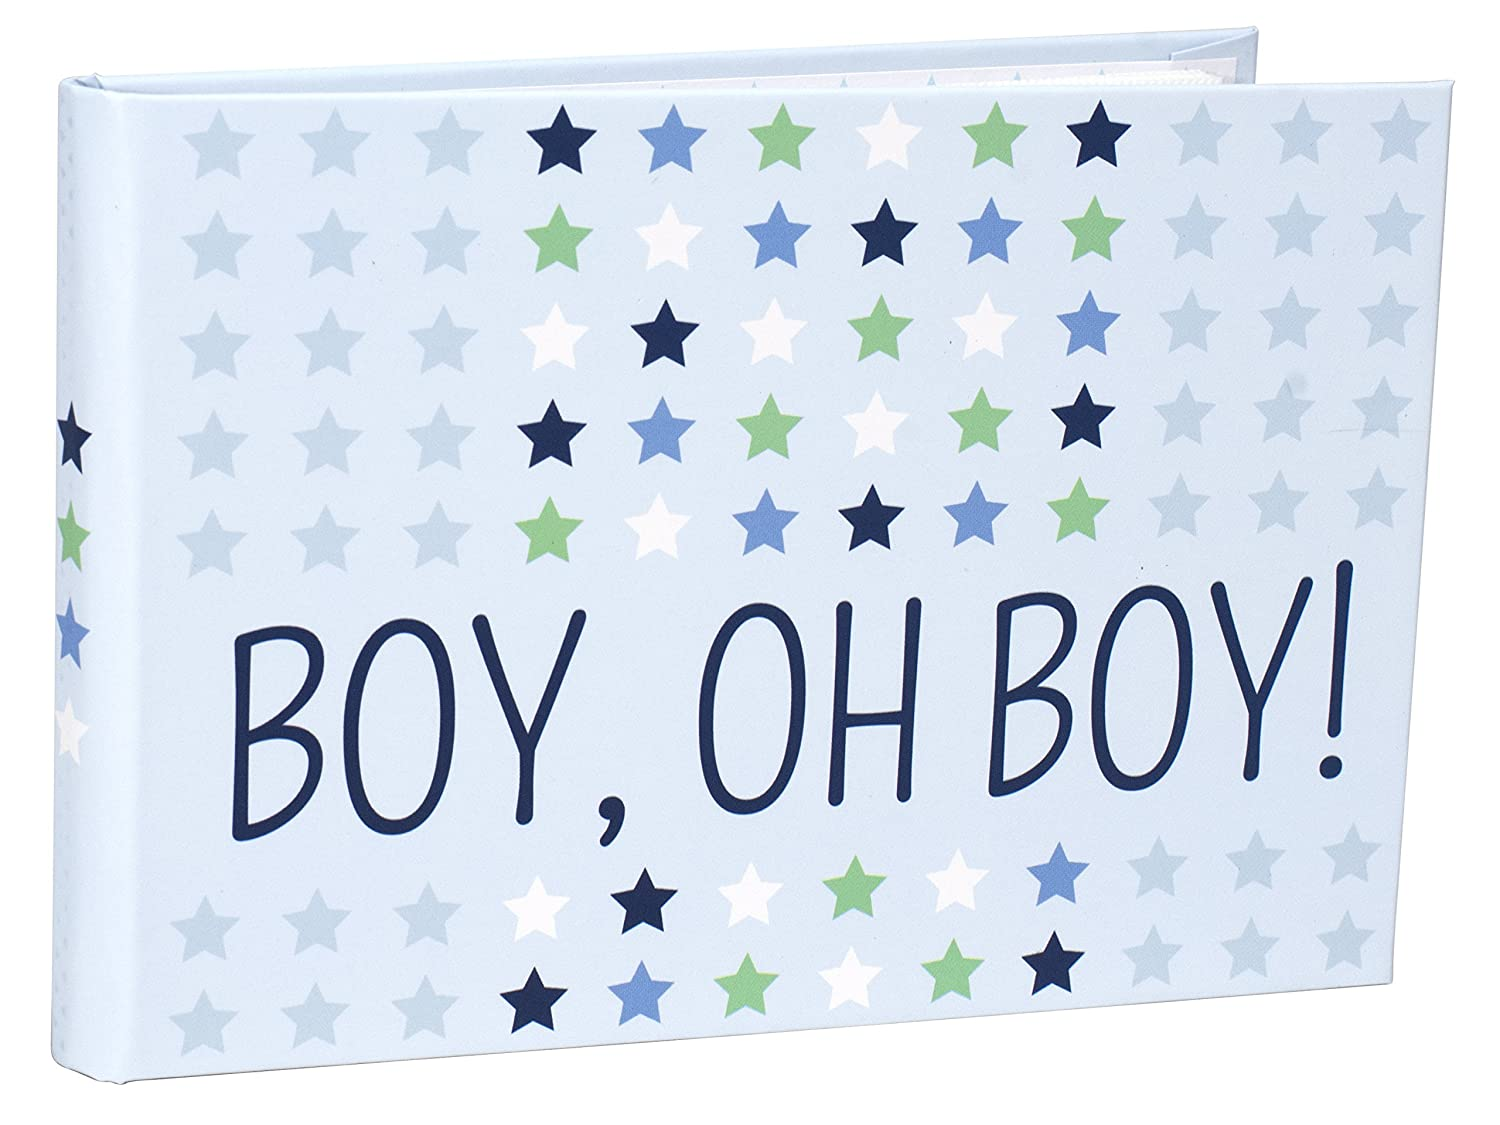 Malden 7070-16 Designs Boy Oh Boy Baby Brag Book, 1-Up, 40-4 X 6, Blue Malden International Design